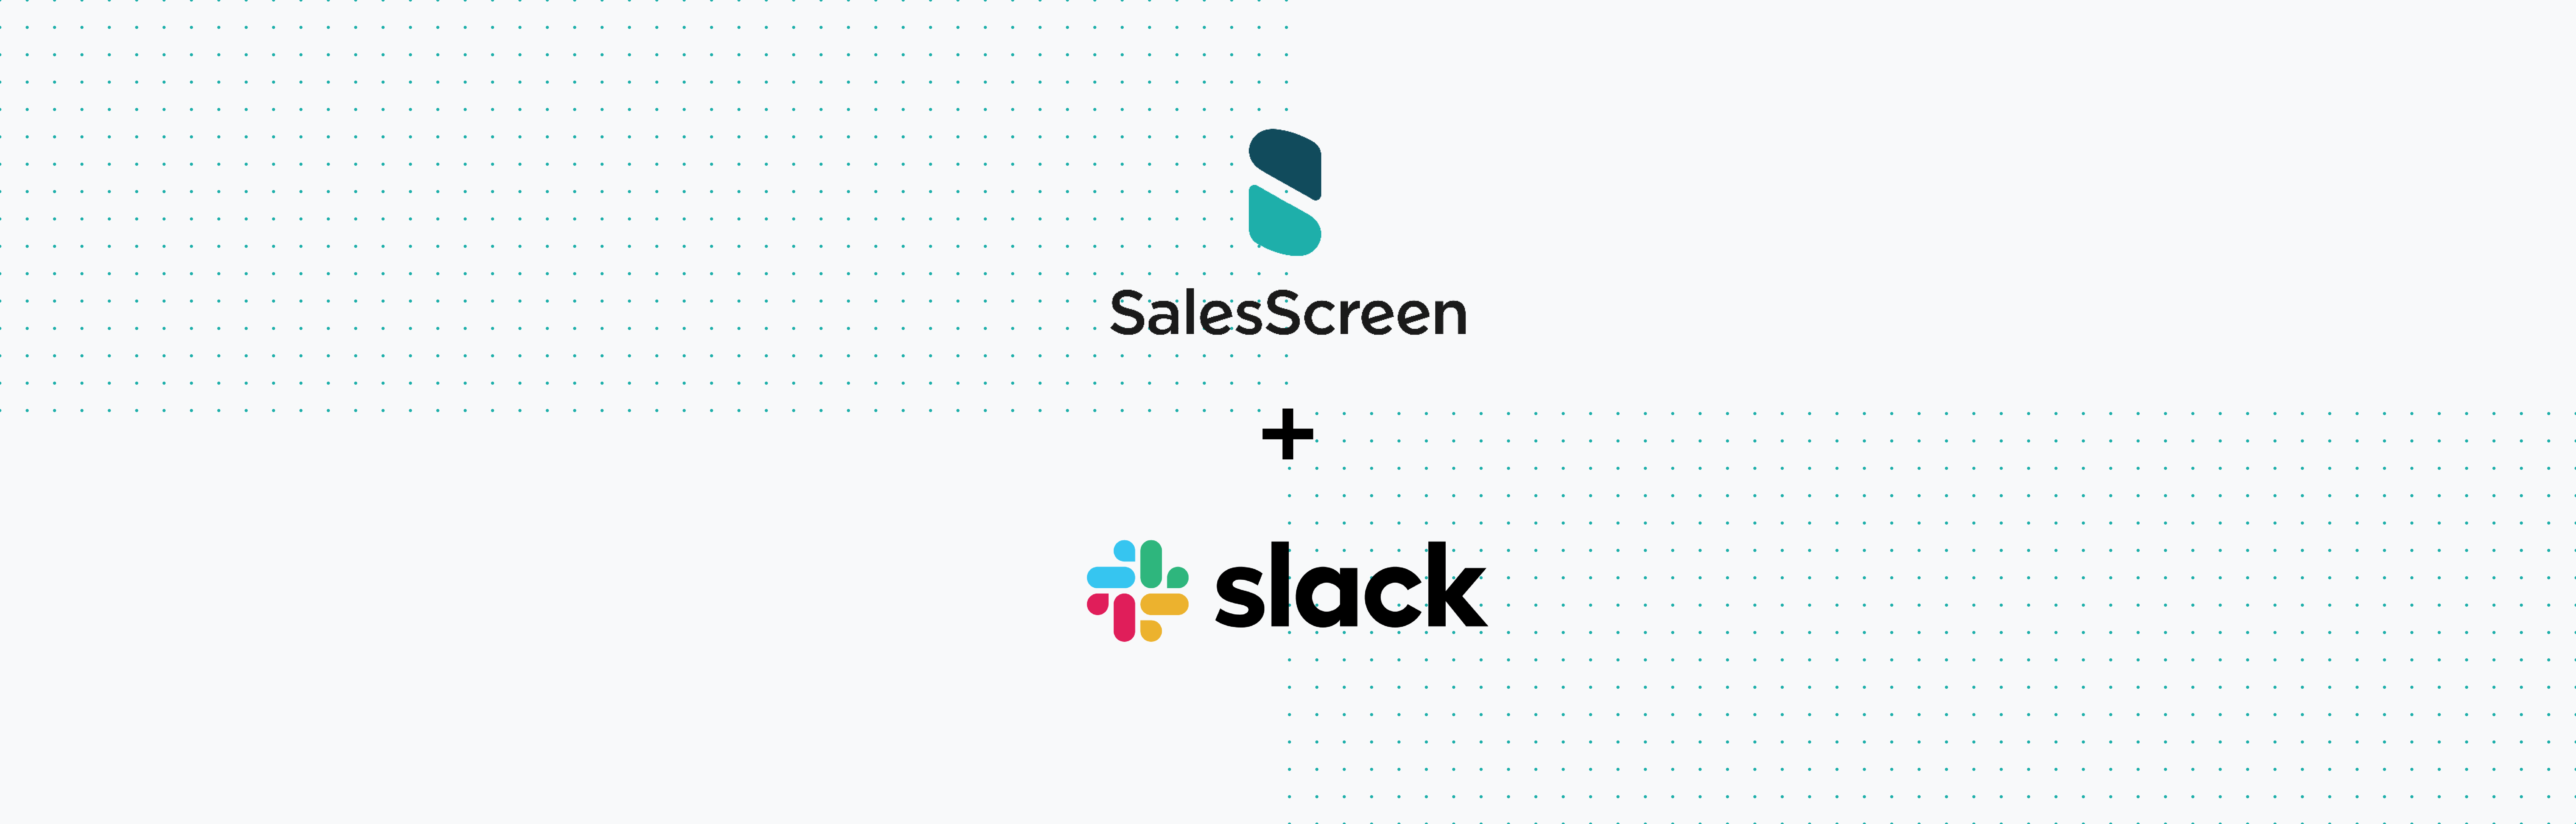 SalesScreen Now Integrates with Slack!!! A Match Made in Heaven <3